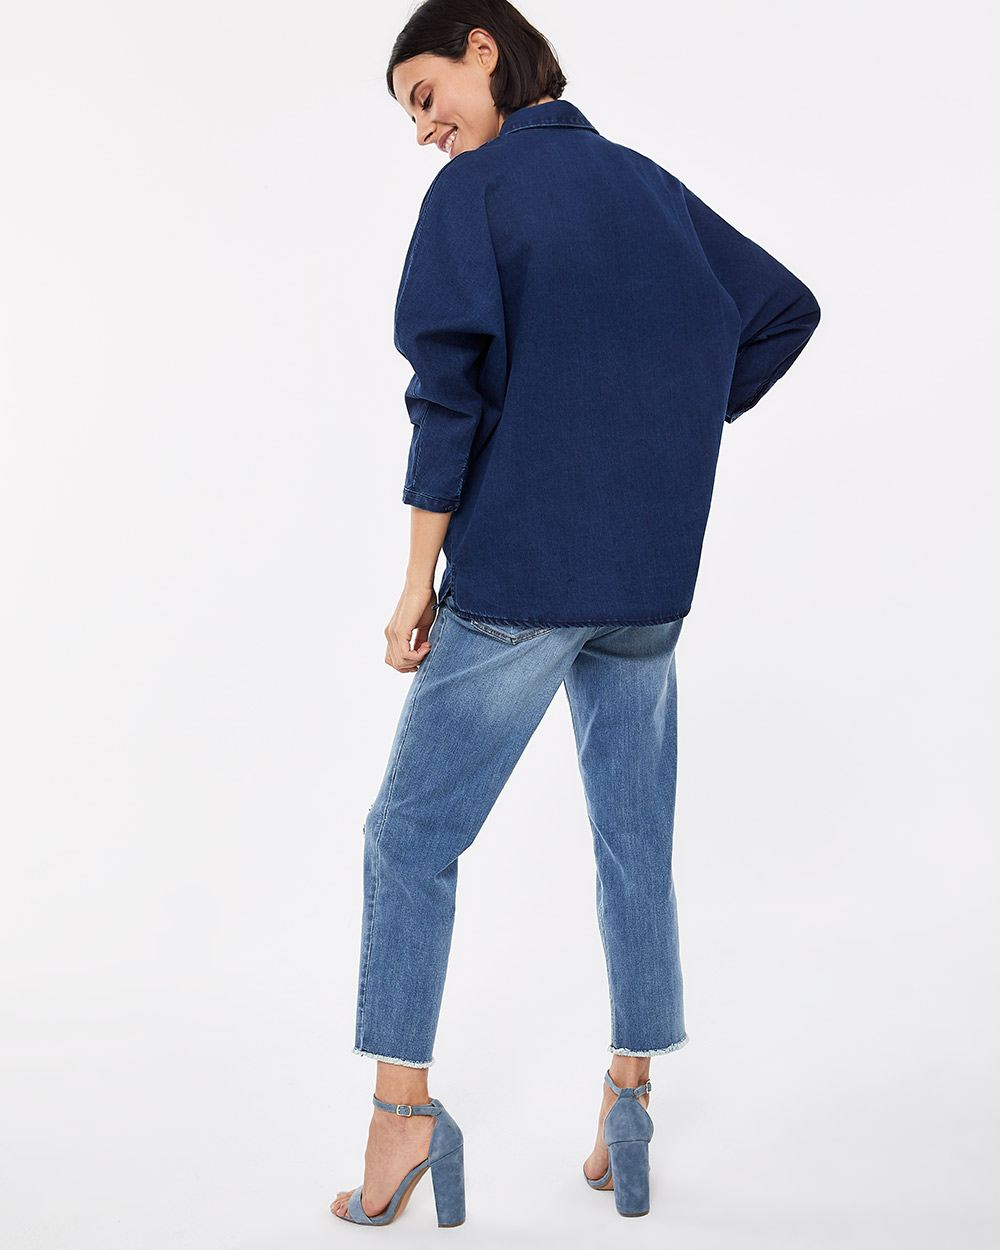 Loose Jeans Blouse